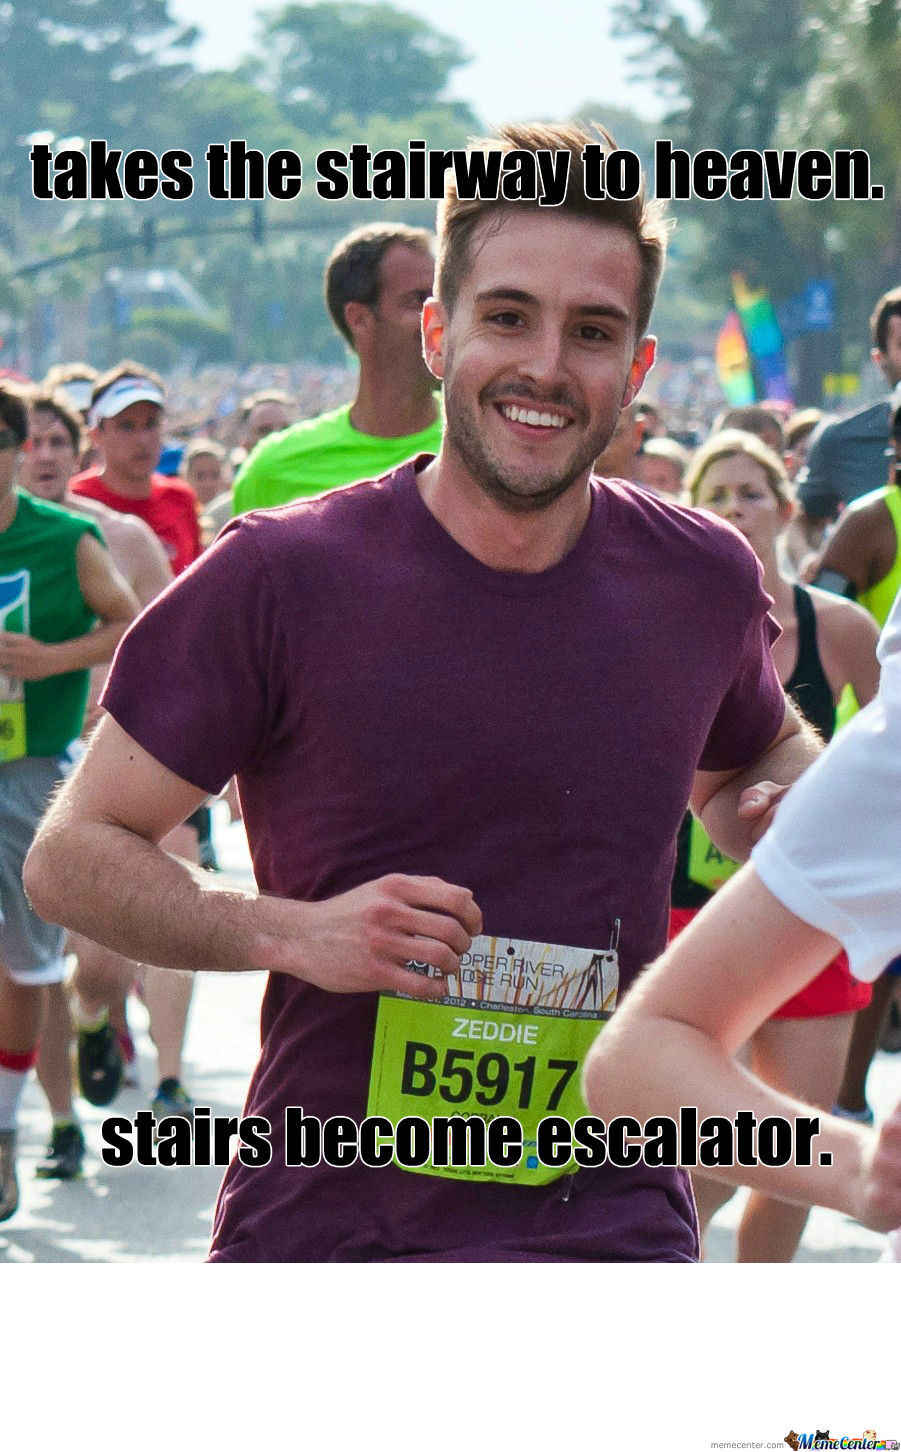 This Memetic Moment: Ridiculously Photogenic Guy and the Perils Meme ridiculously photogenic guy